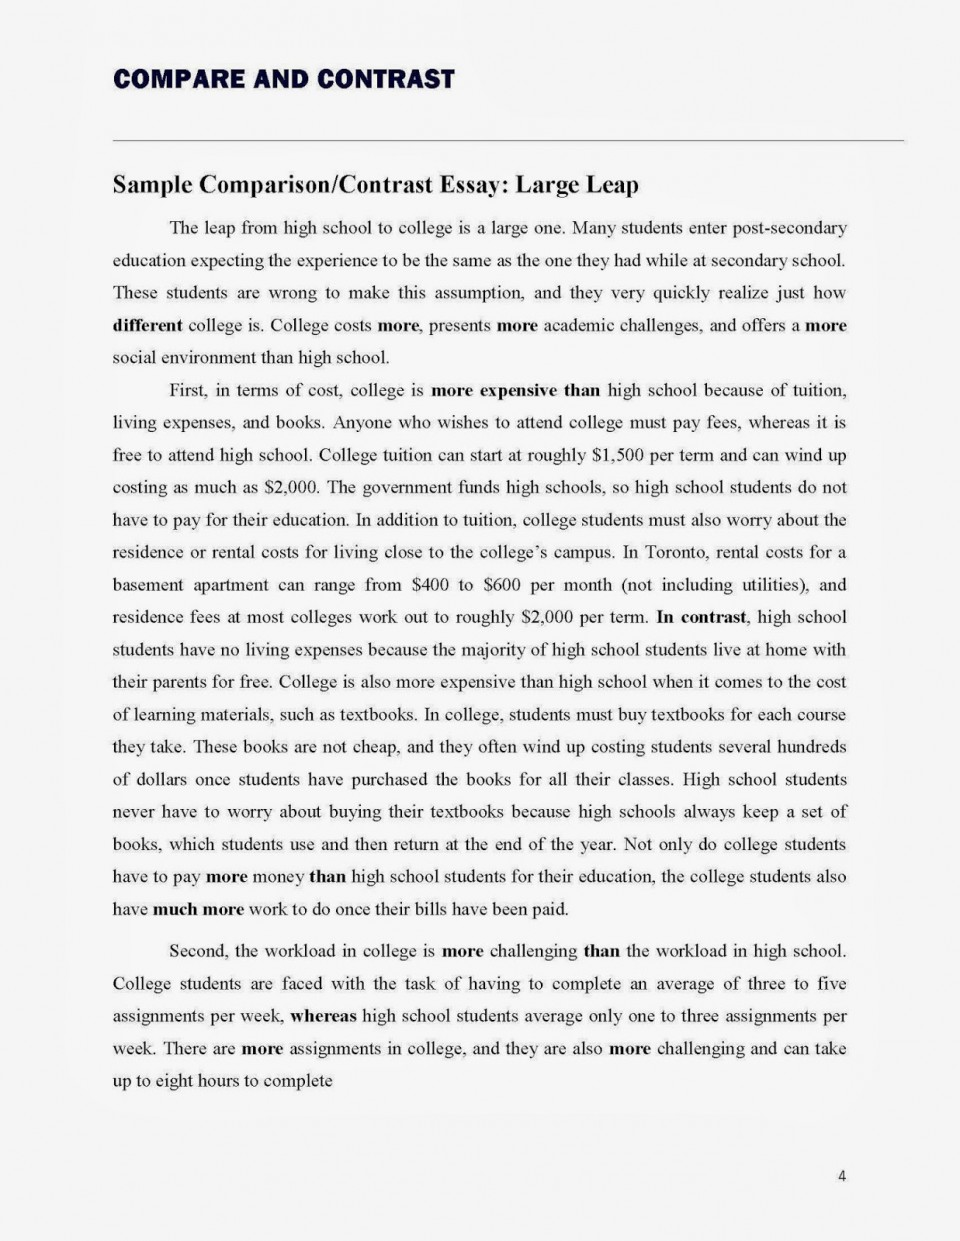 011 Good Compare And Contrast Essay Compare20and20contrast20essay Page 4 Unbelievable How To Write A Conclusion Paragraph For Examples Transition Words Essays Pdf 960